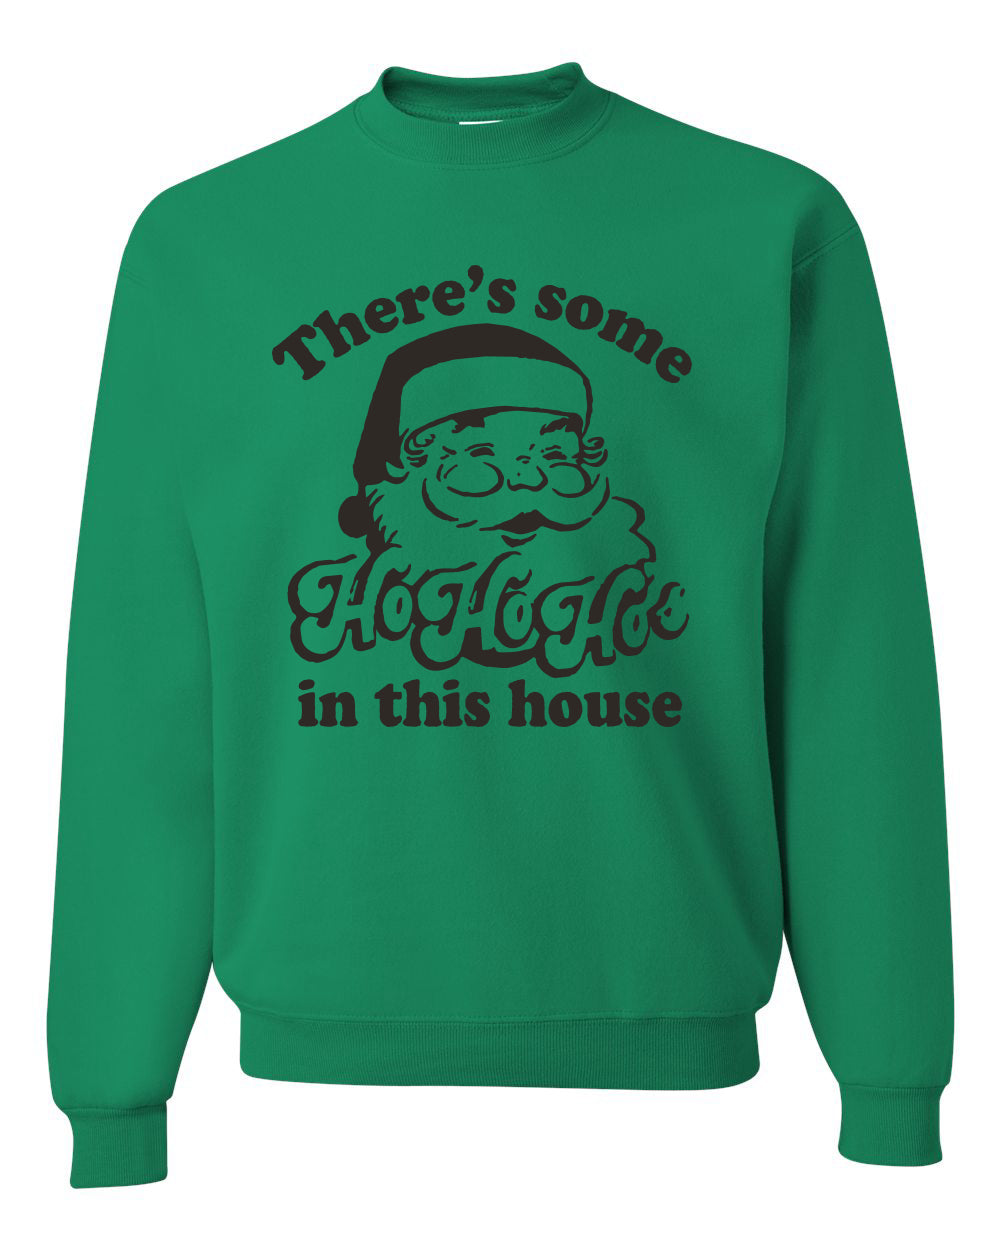 Theres some Ho Ho Ho in this House Ugly Christmas Sweater Unisex Crewneck Graphic Sweatshirt